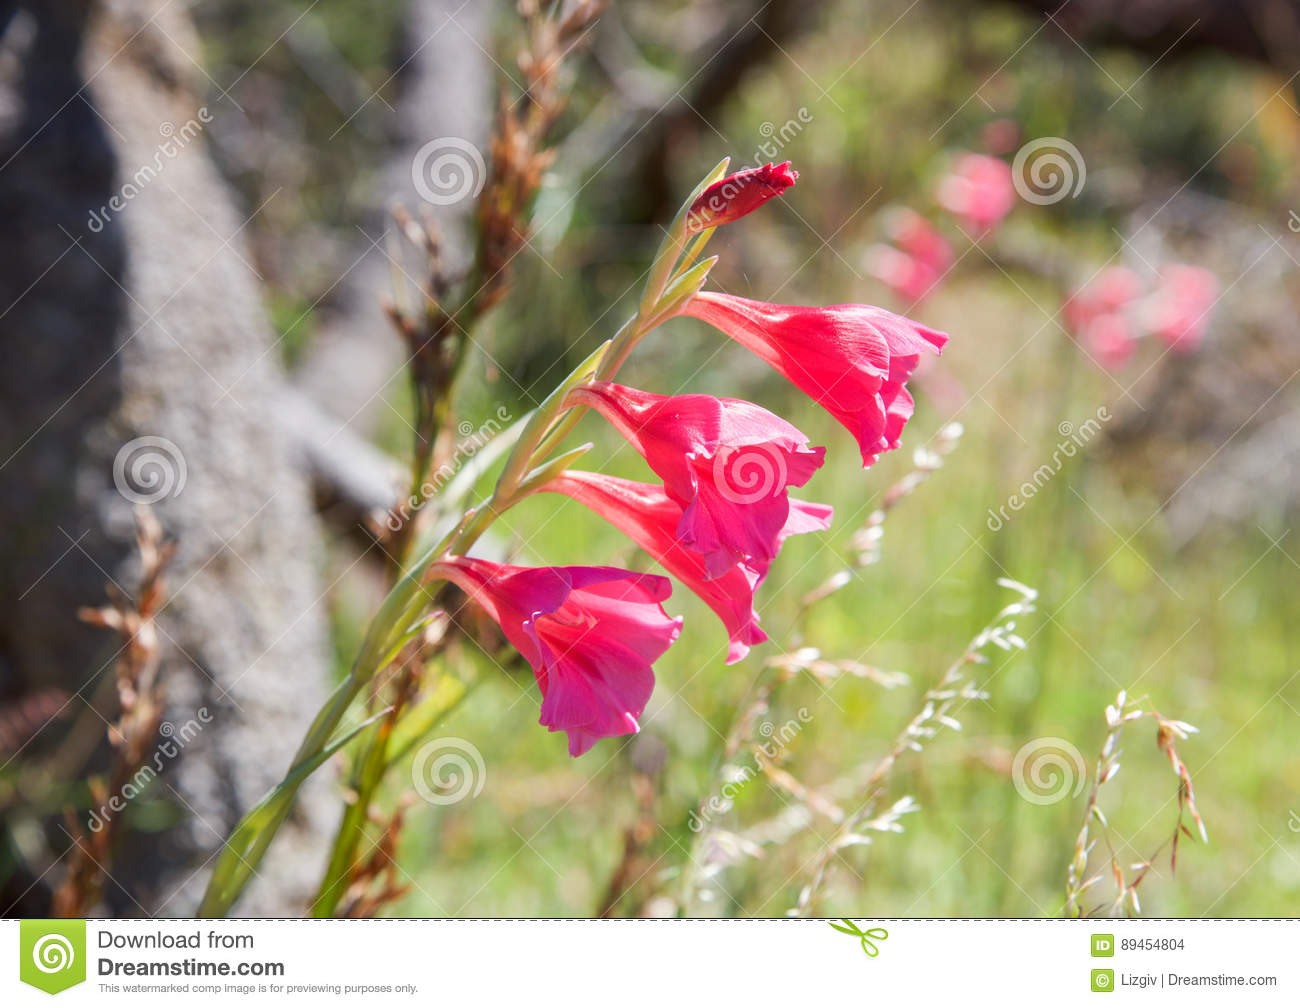 Springtime Flowers Stock Photo Image Of Native Bright 89454804